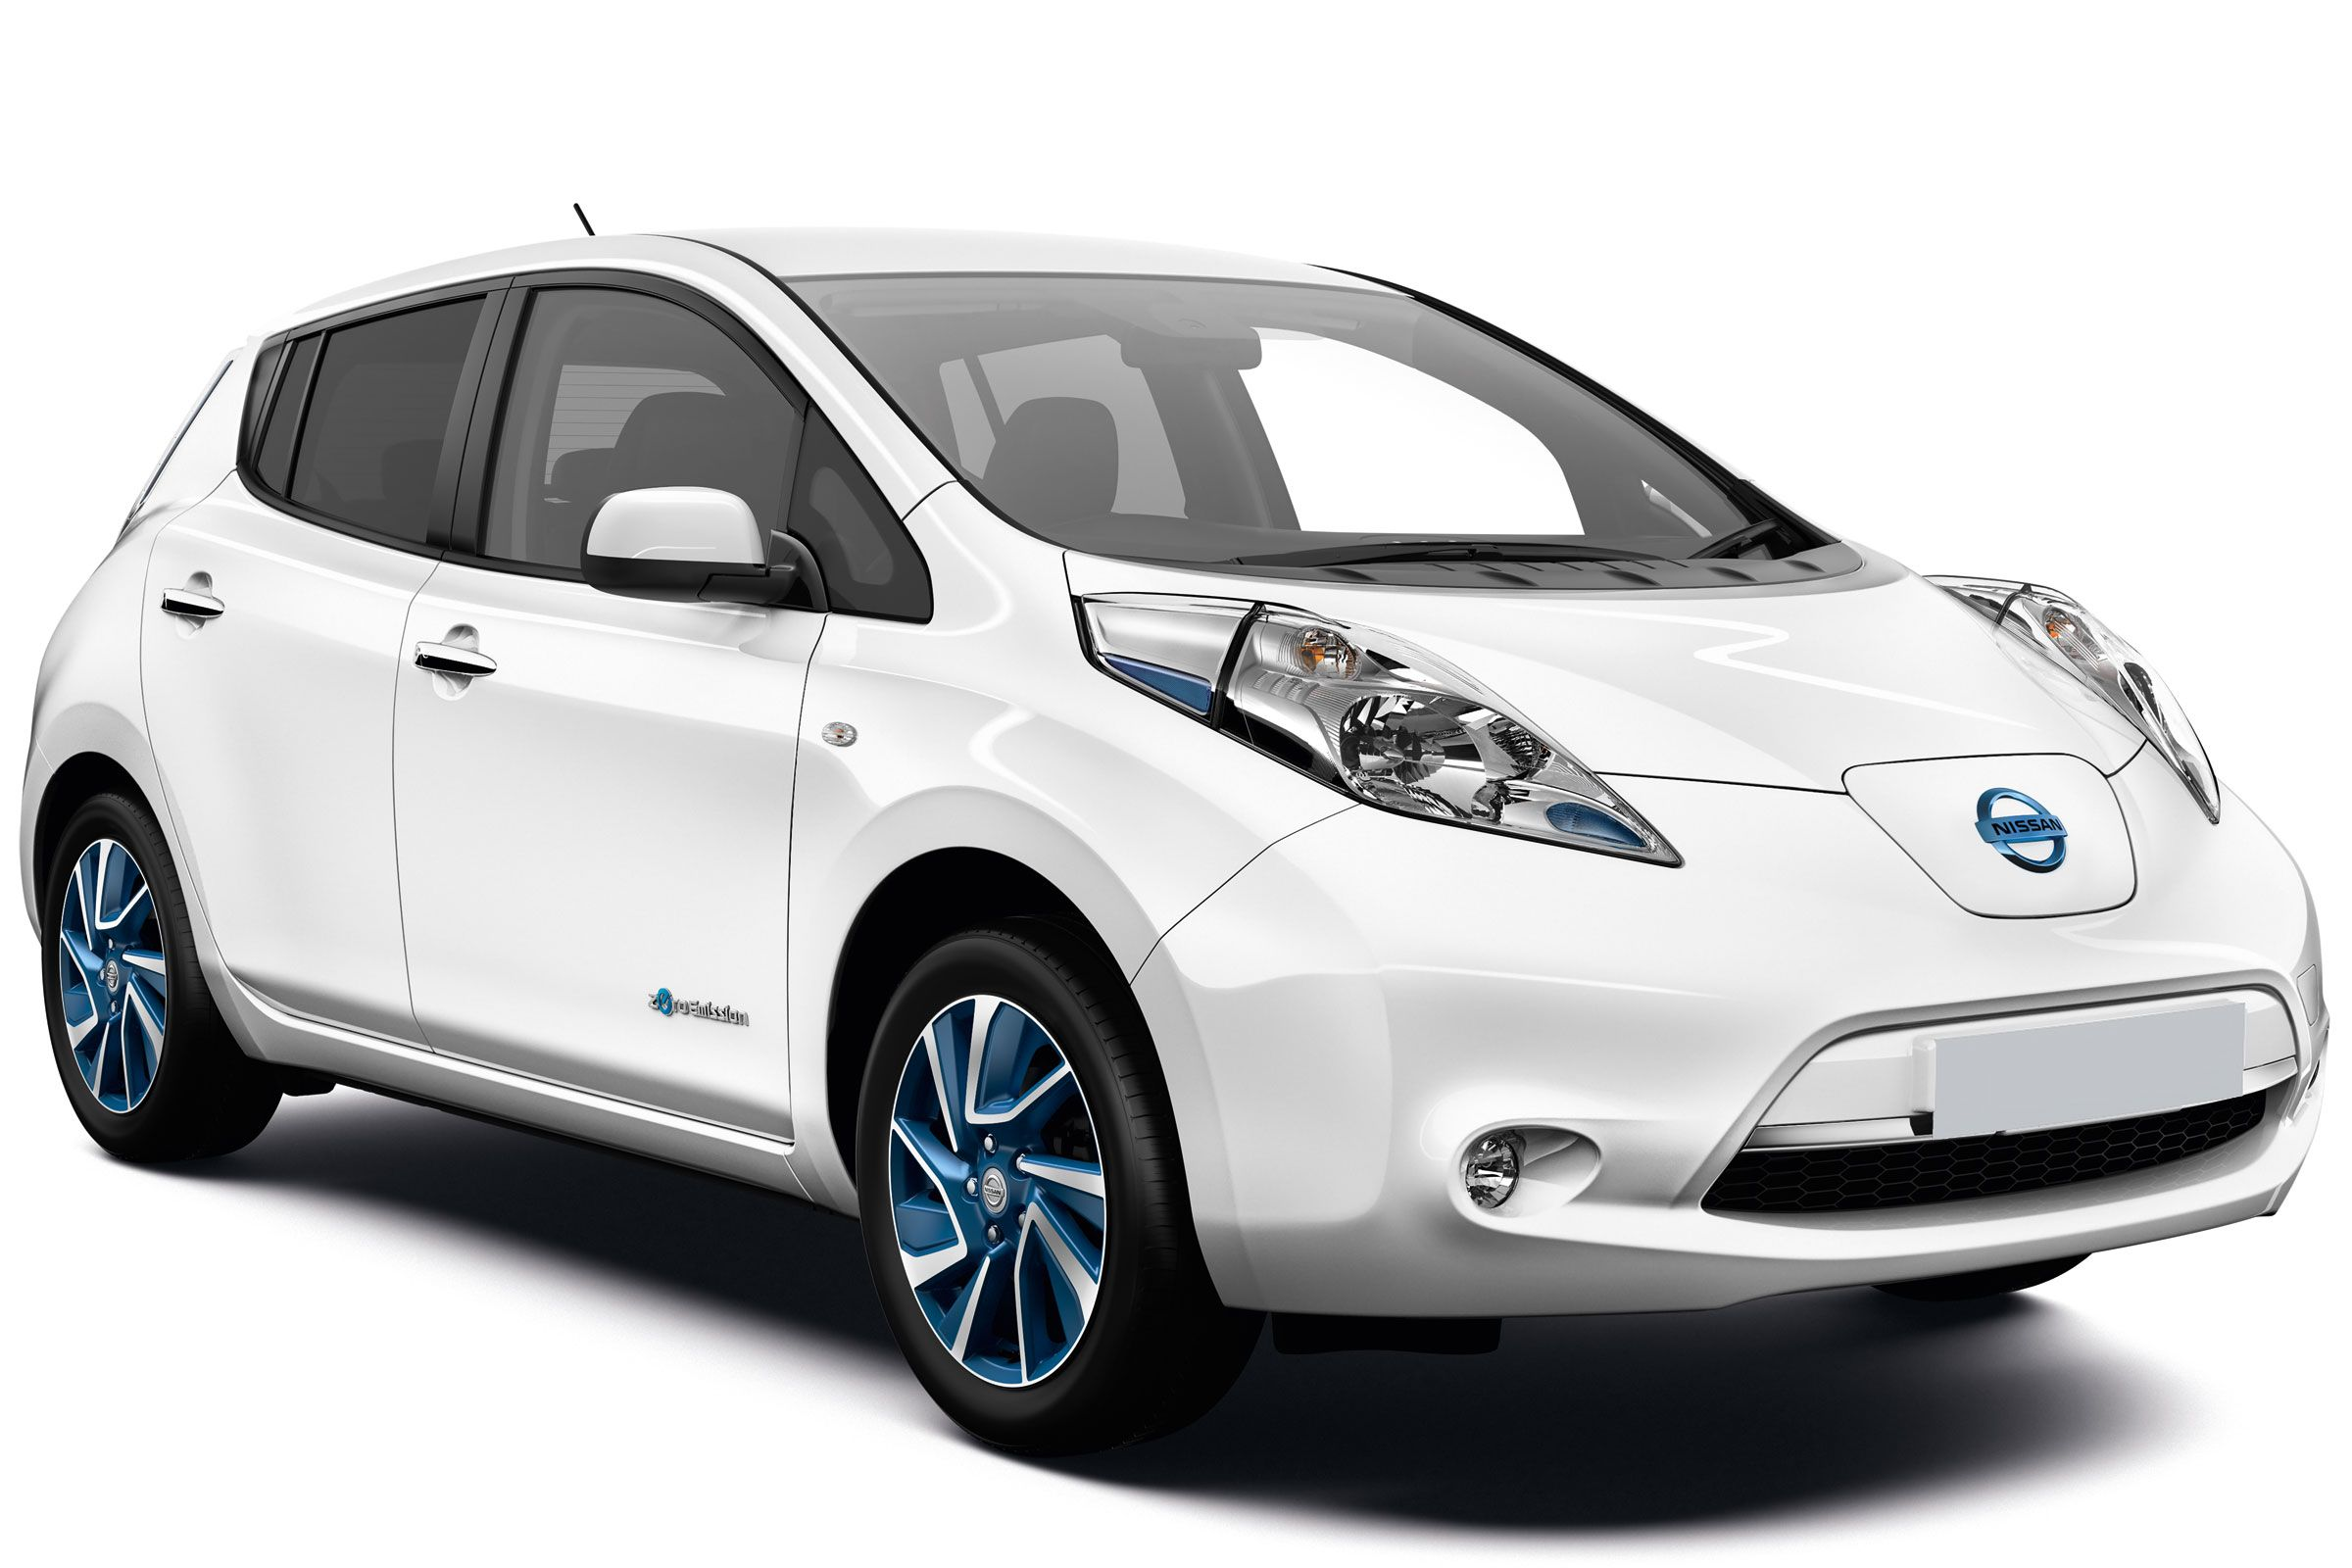 16 best nissan images on pinterest electric cars cars and electric vehicle